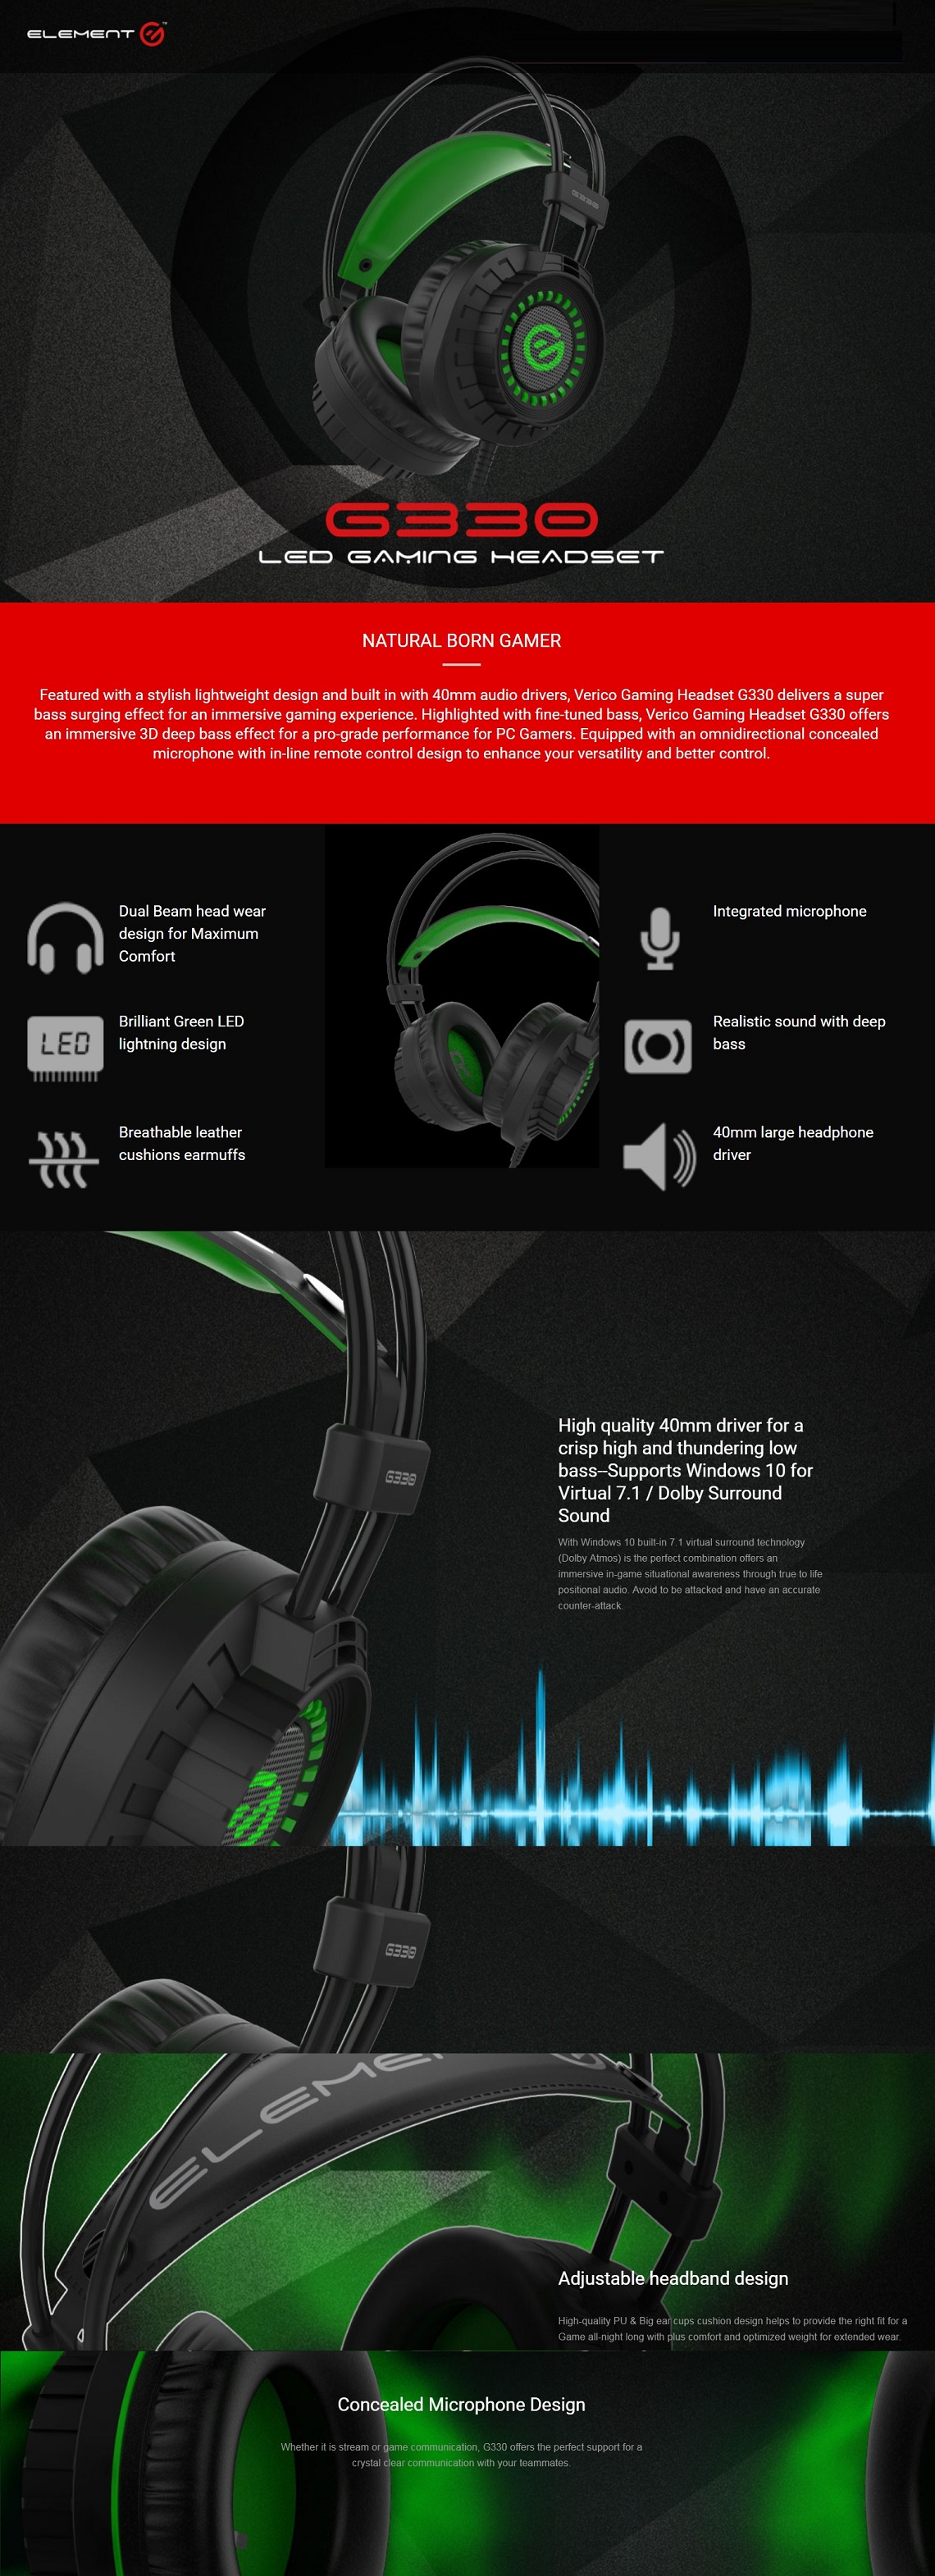 Verico Element G G330 USB & 3.5mm Green LED Gaming with 40mm Audio Drivers